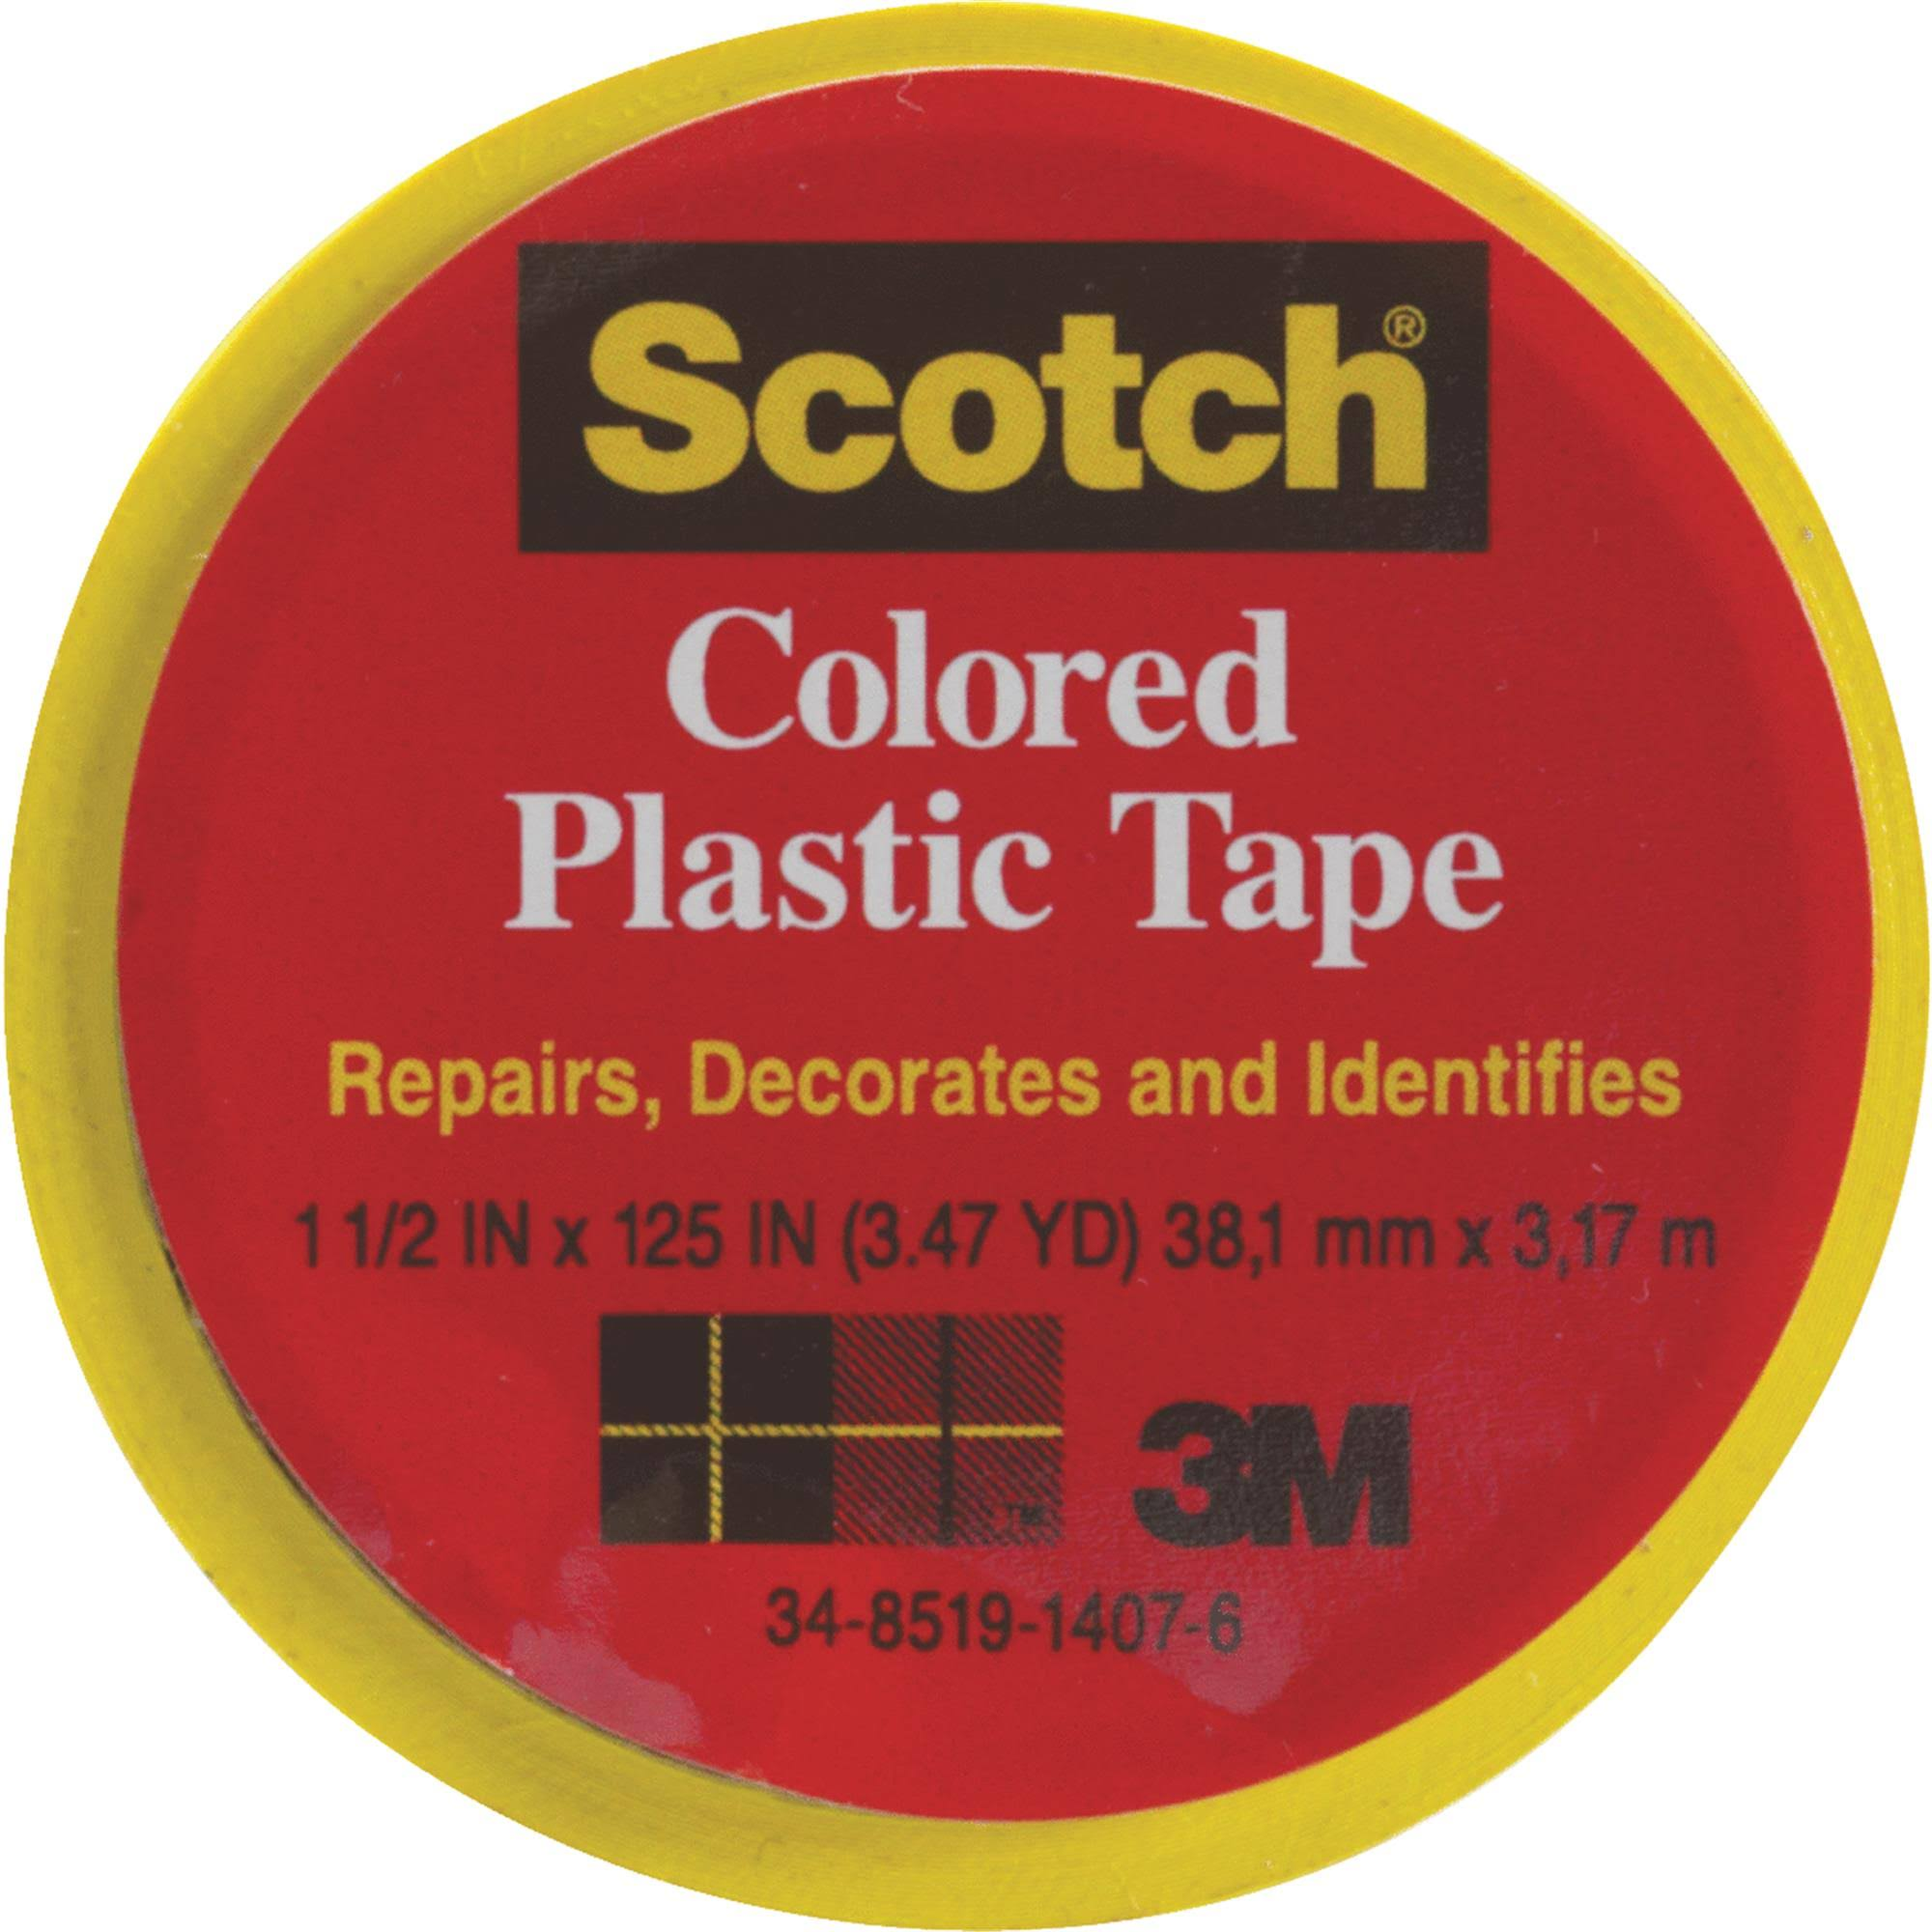 3M Scotch Plastic Tape - 19mm x 3.17m